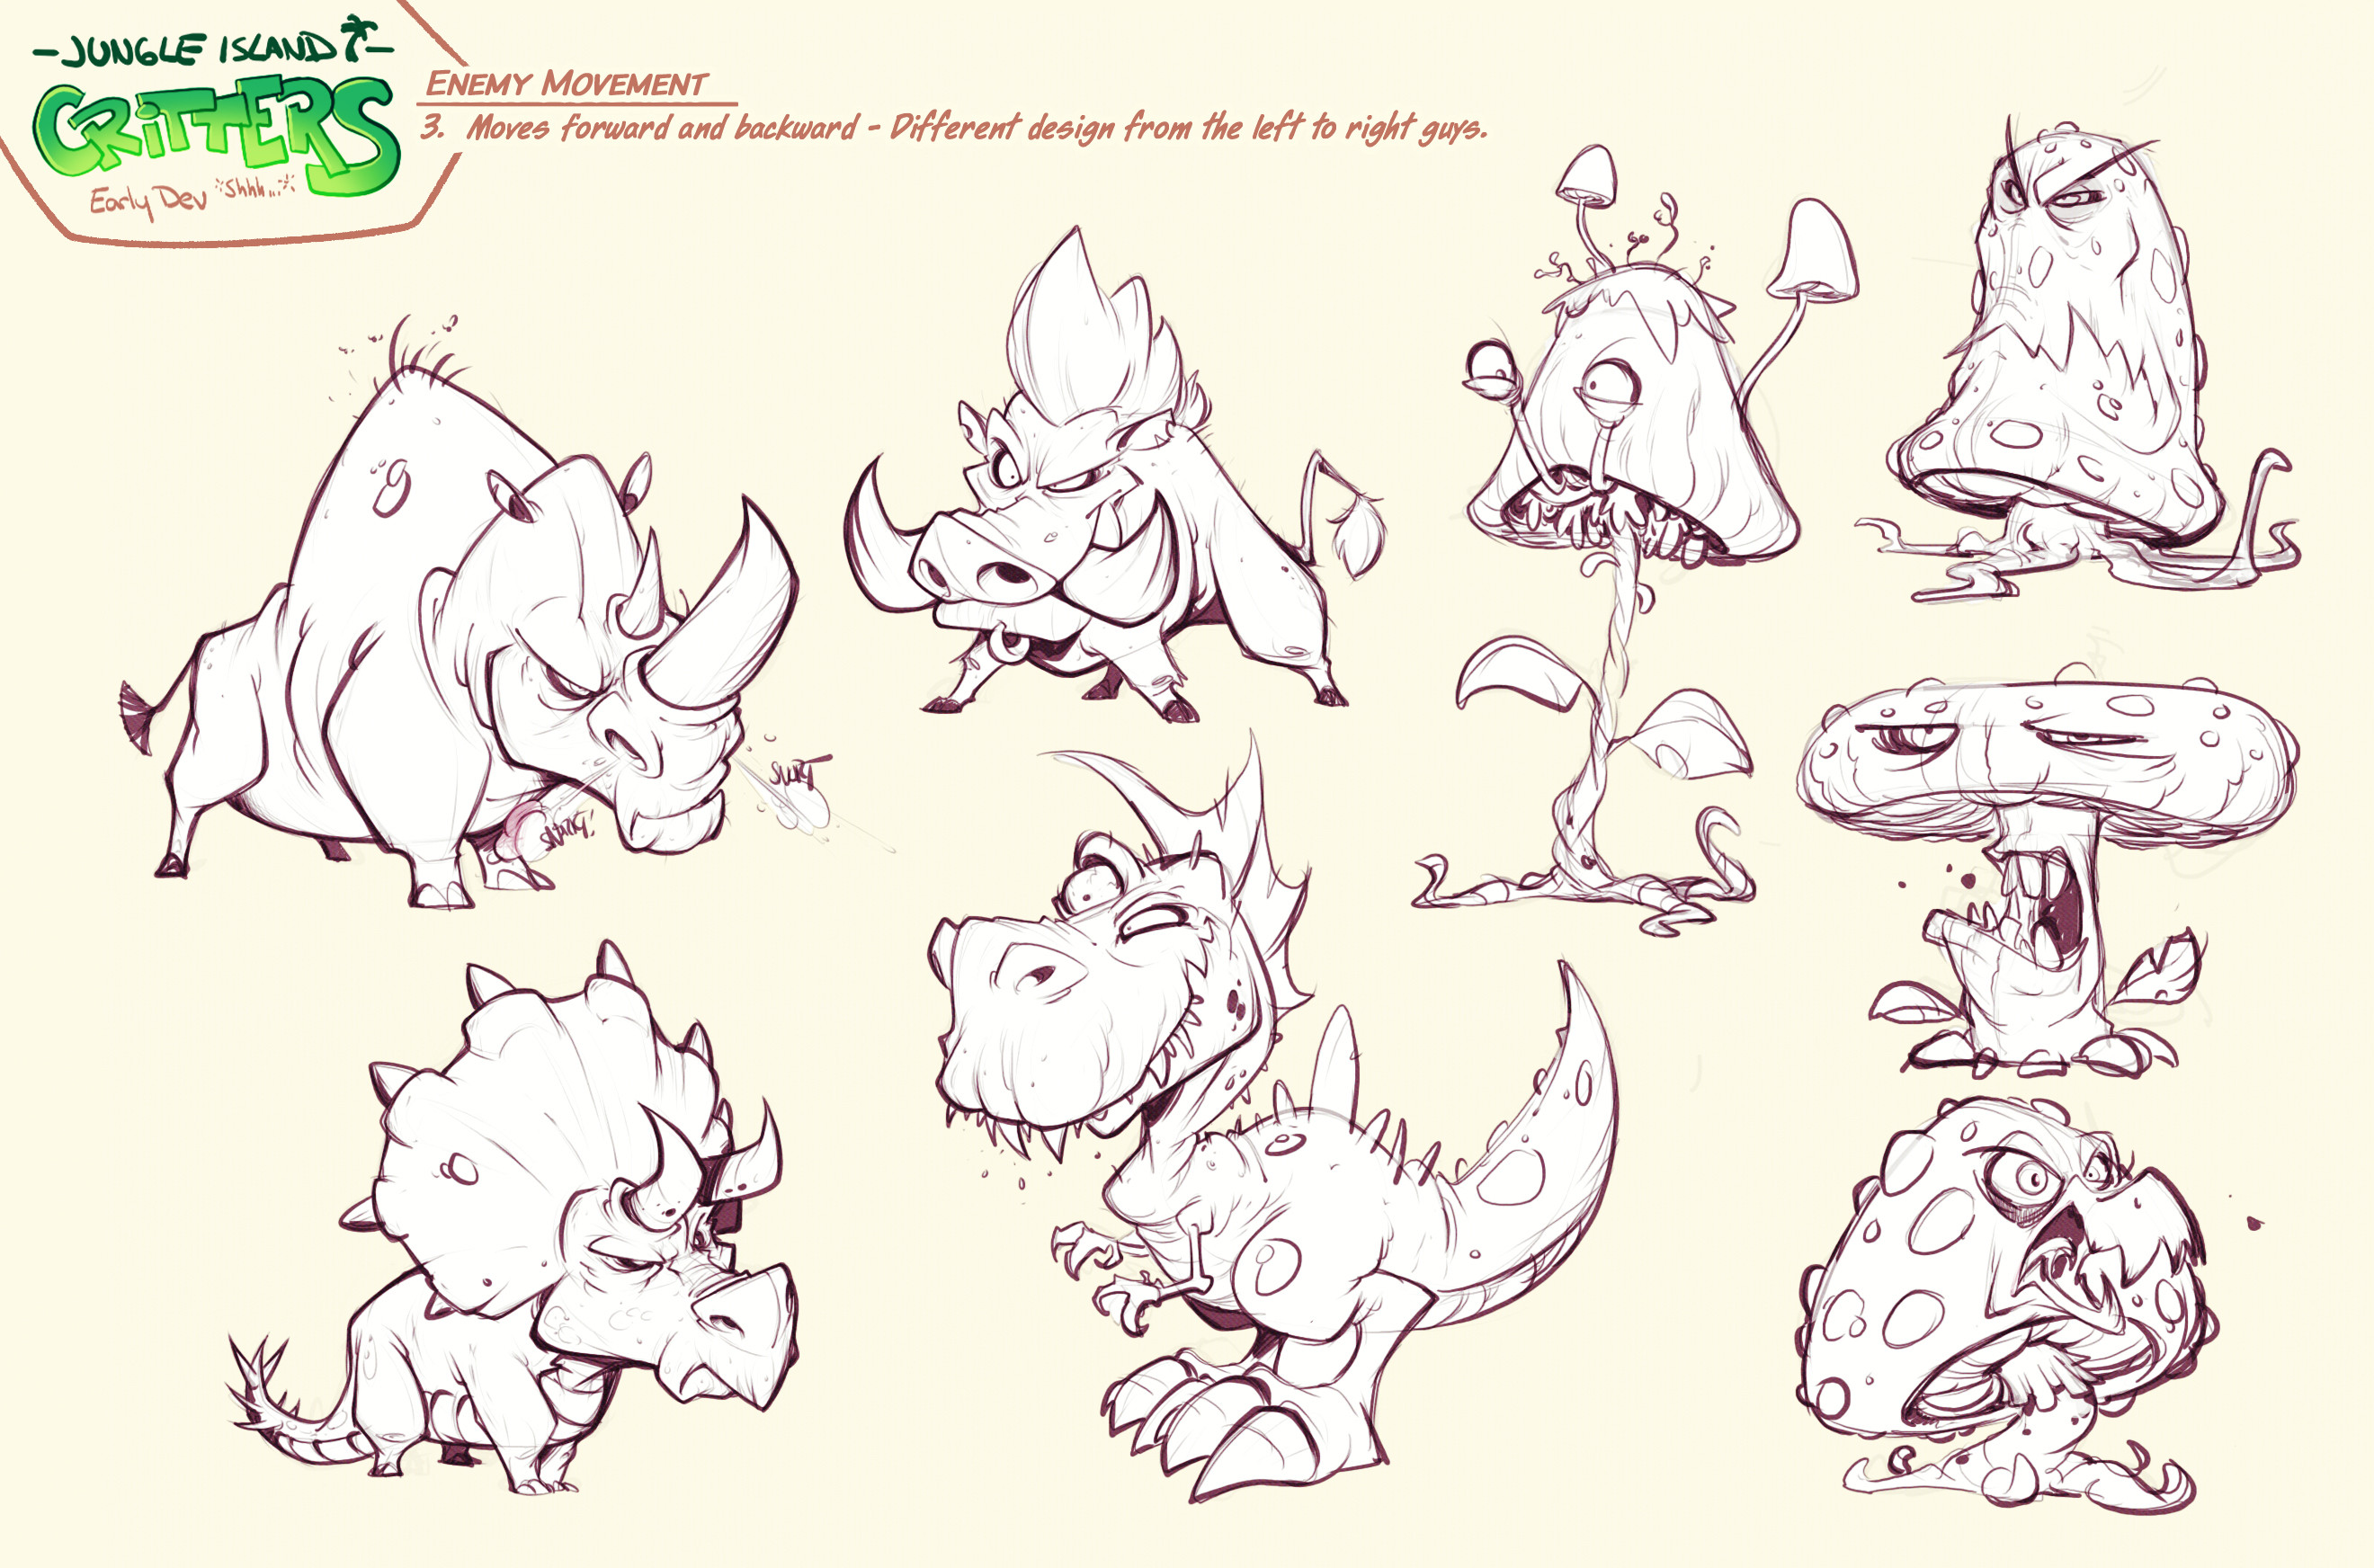 Critter Line sketches I never got the chance to color. The weirdness of killer fungi is my soul on paper.